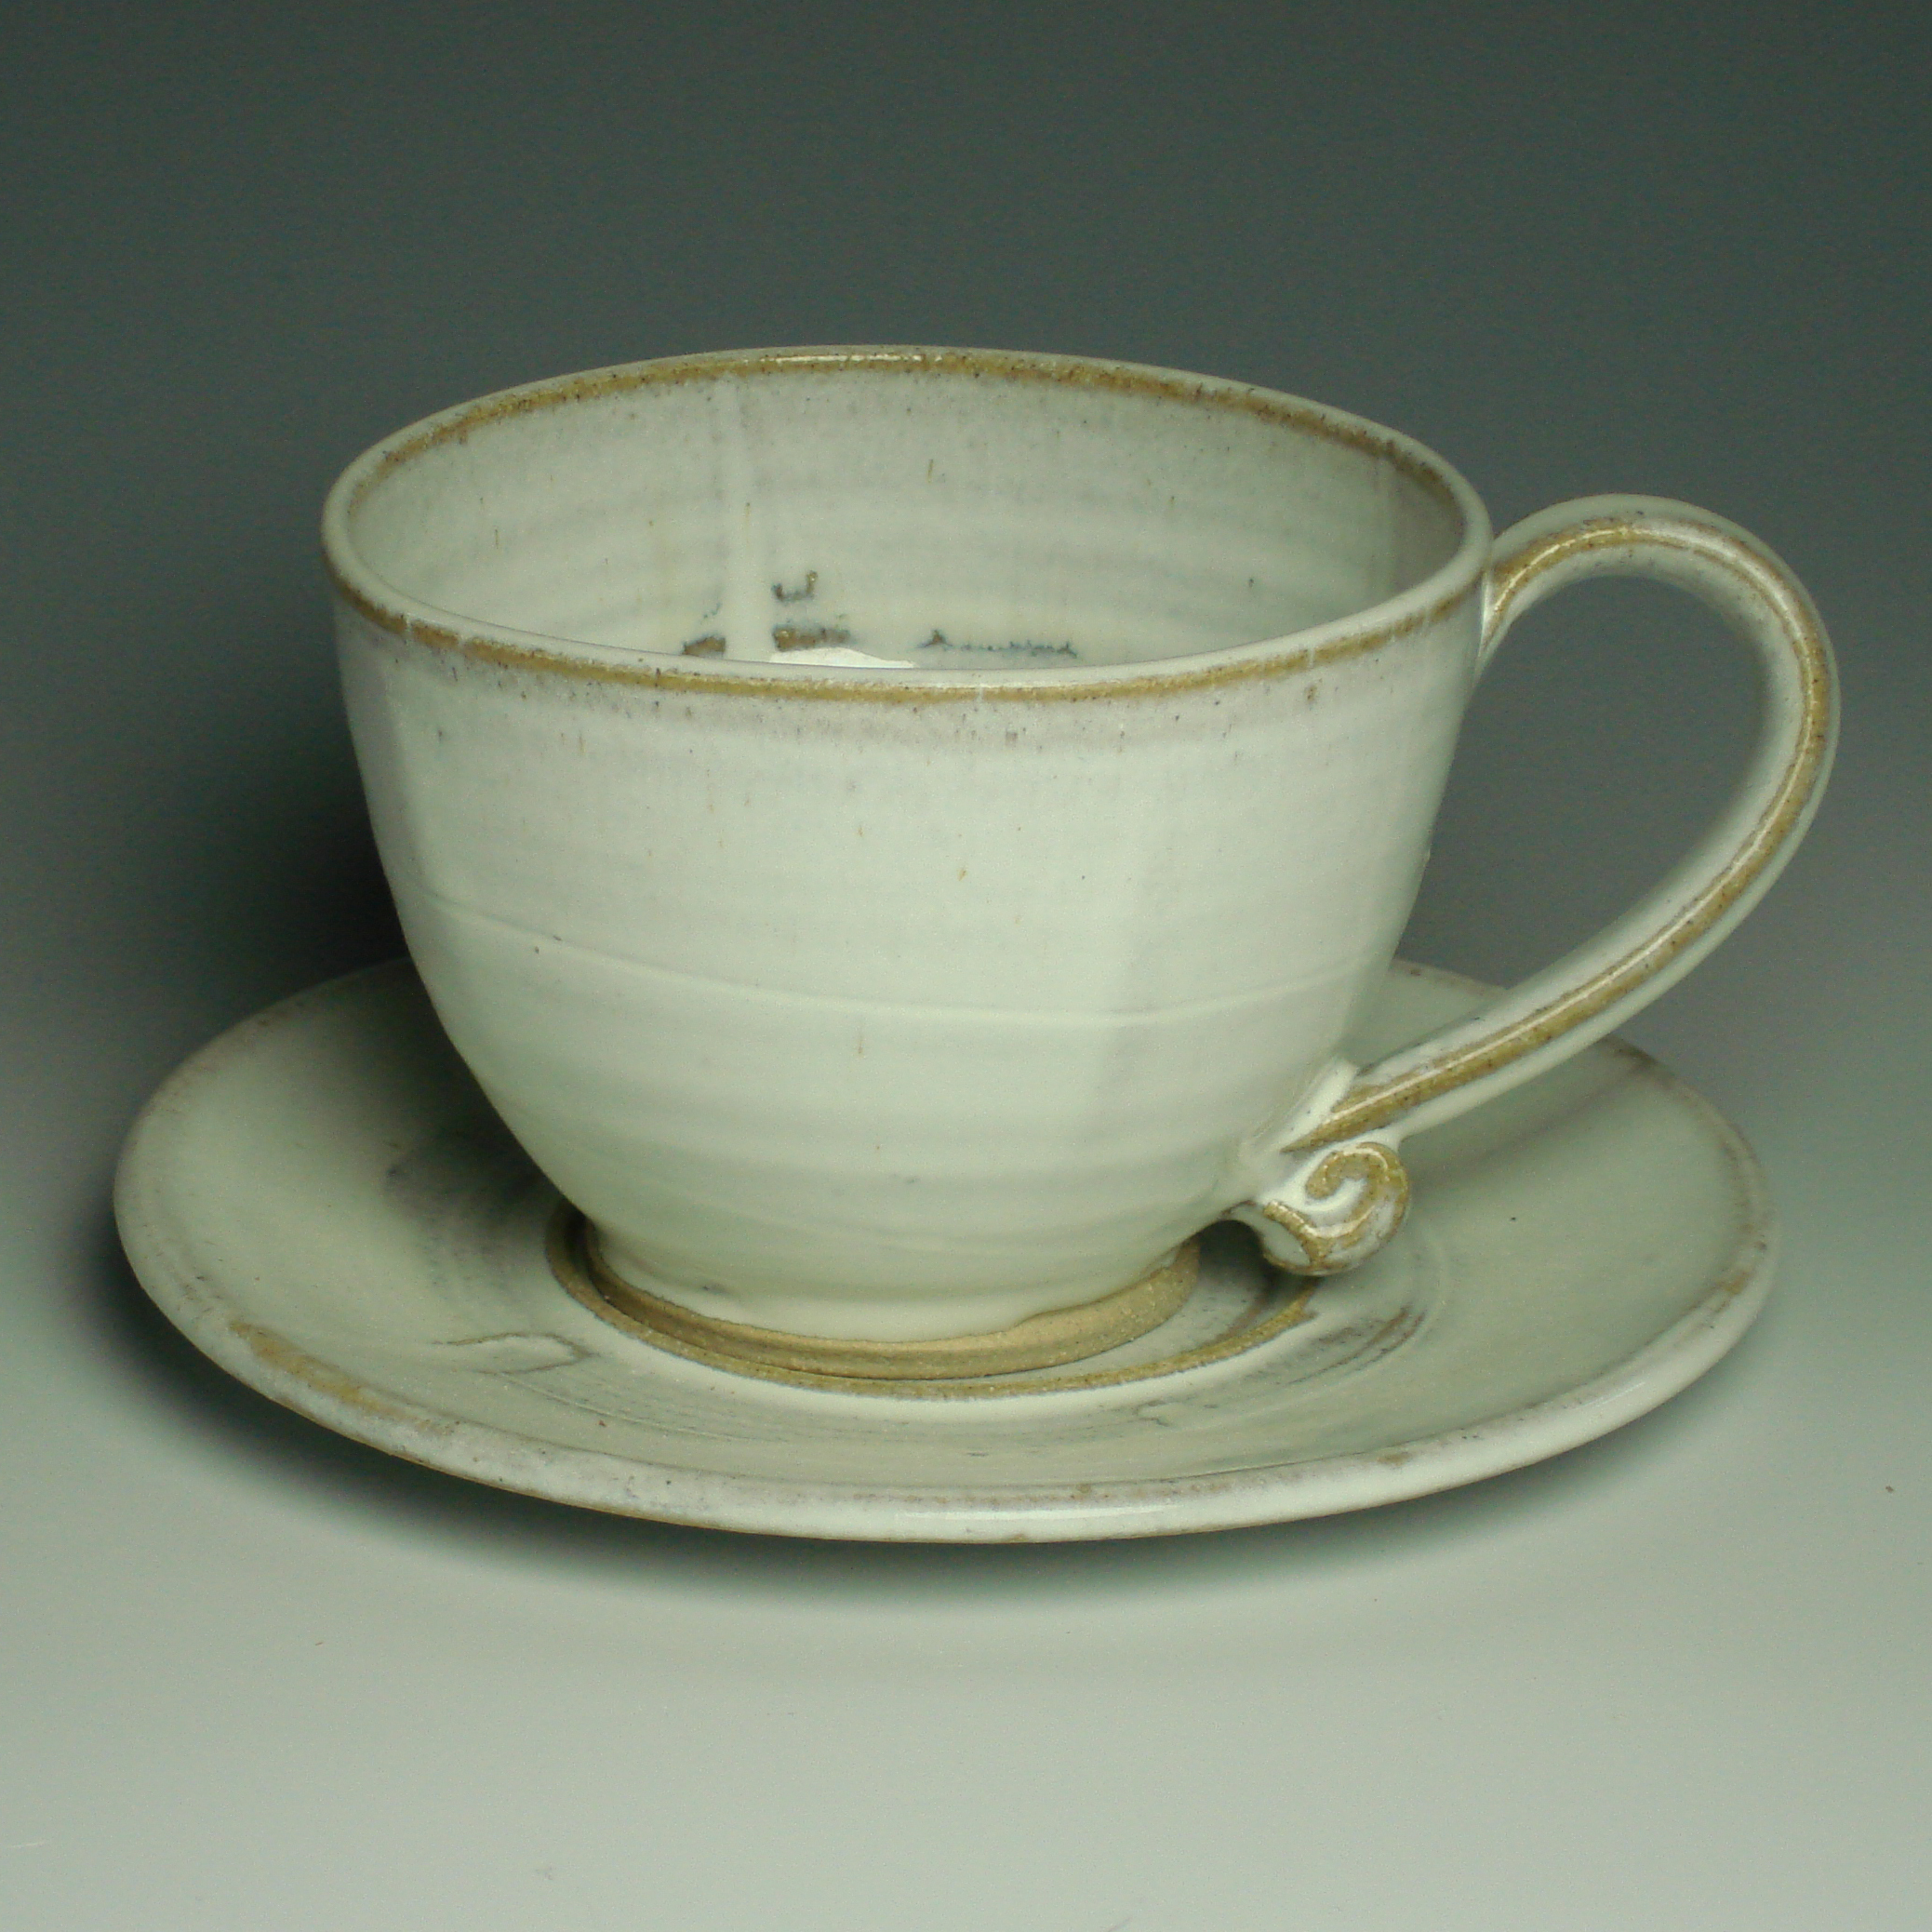 Cappucino Cup and Saucer - Winter white